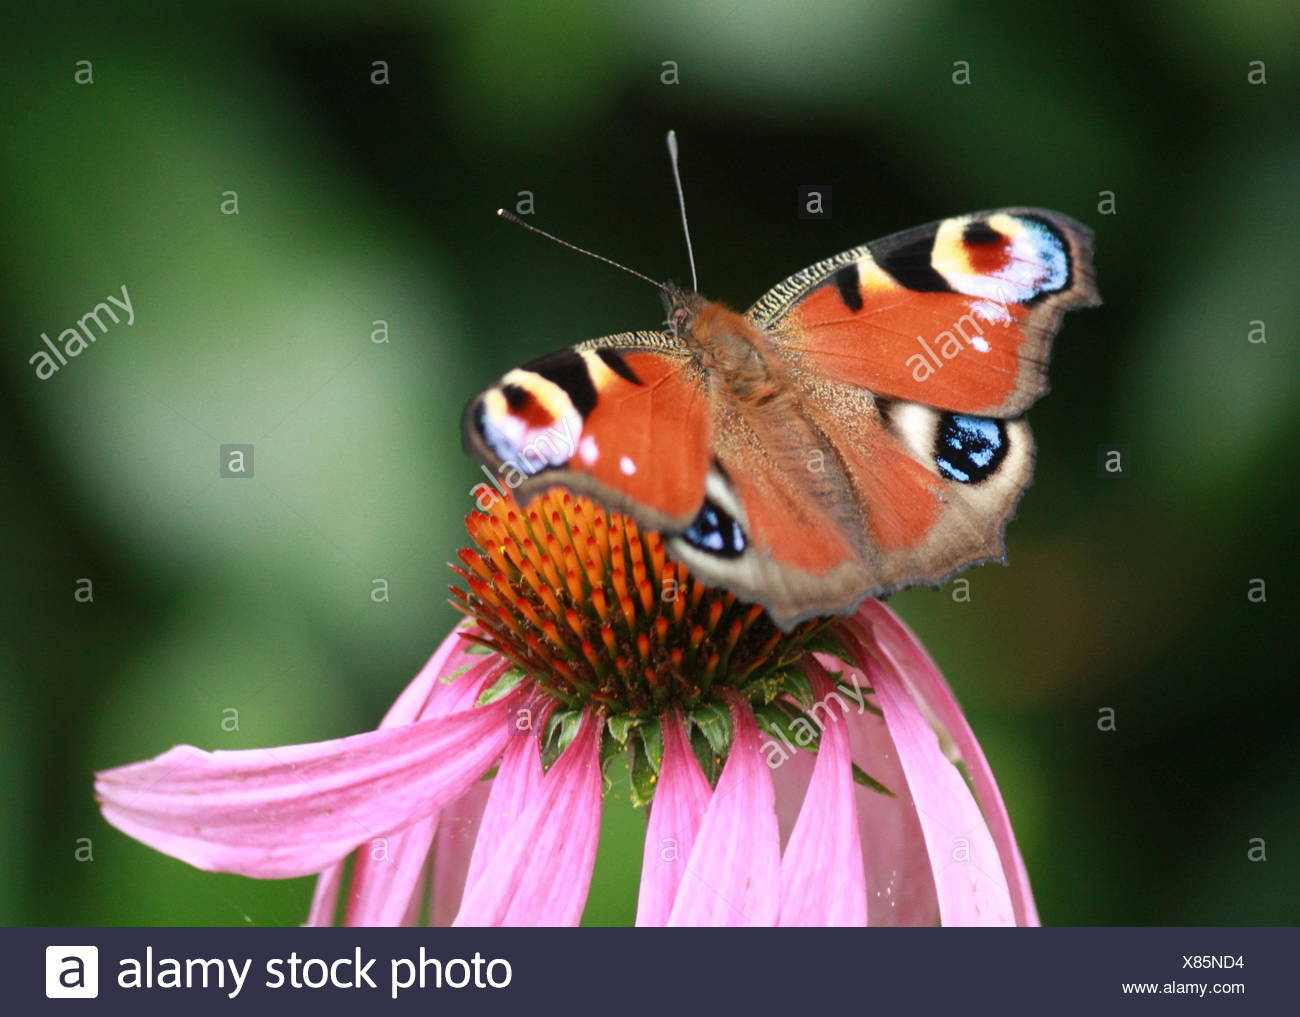 peacock butterfly on flower - Stock Image